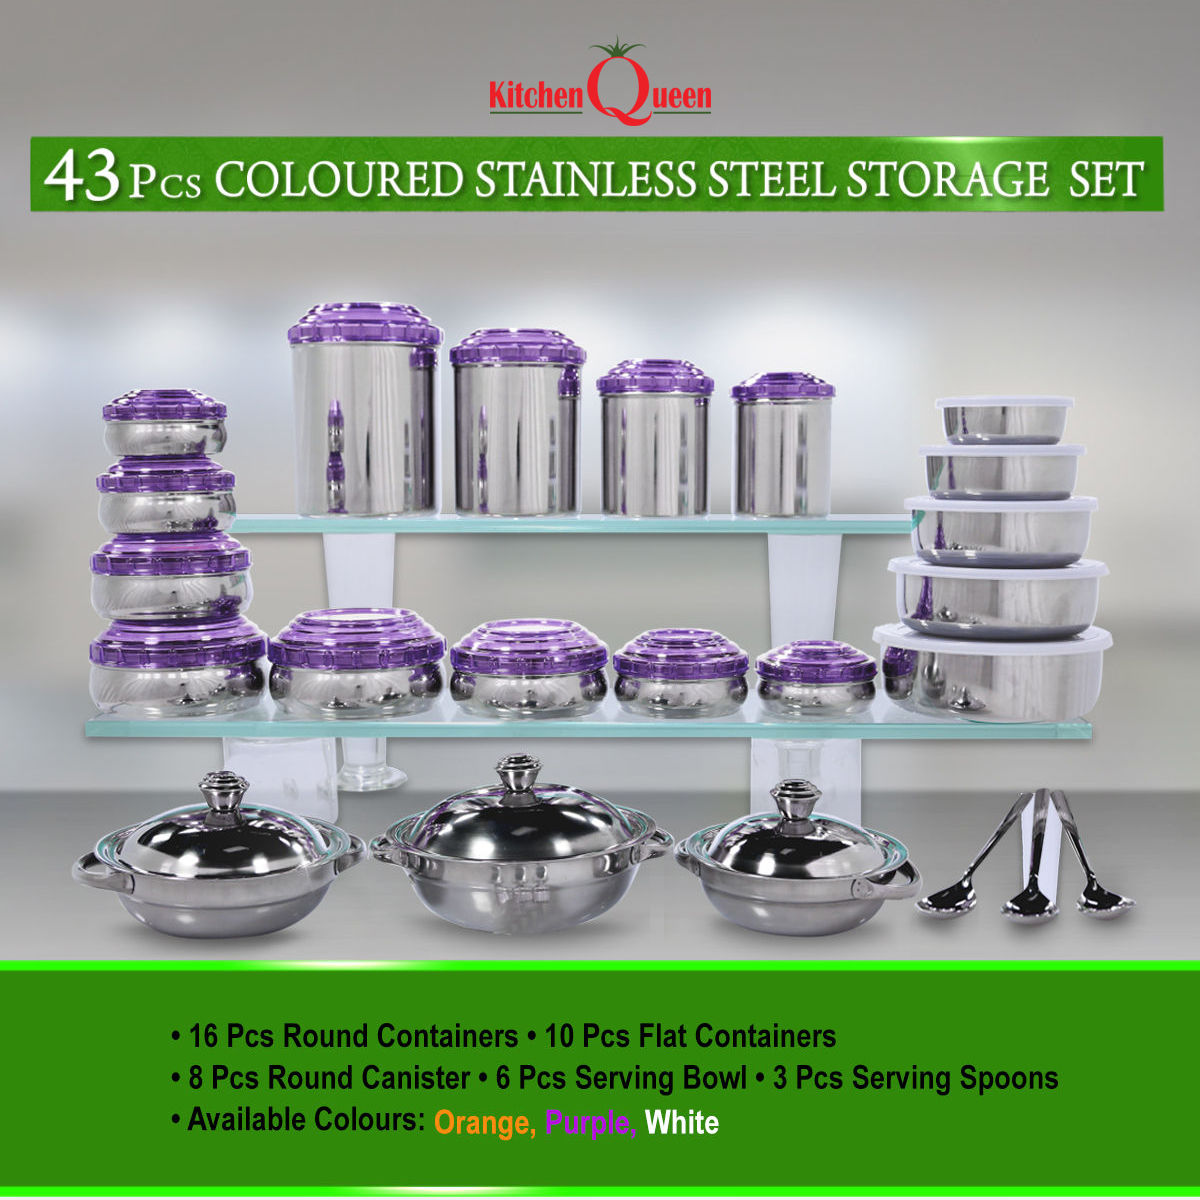 kitchen storage containers in india at best price on naaptol kitchen queen 43 pcs coloured stainless steel storage set